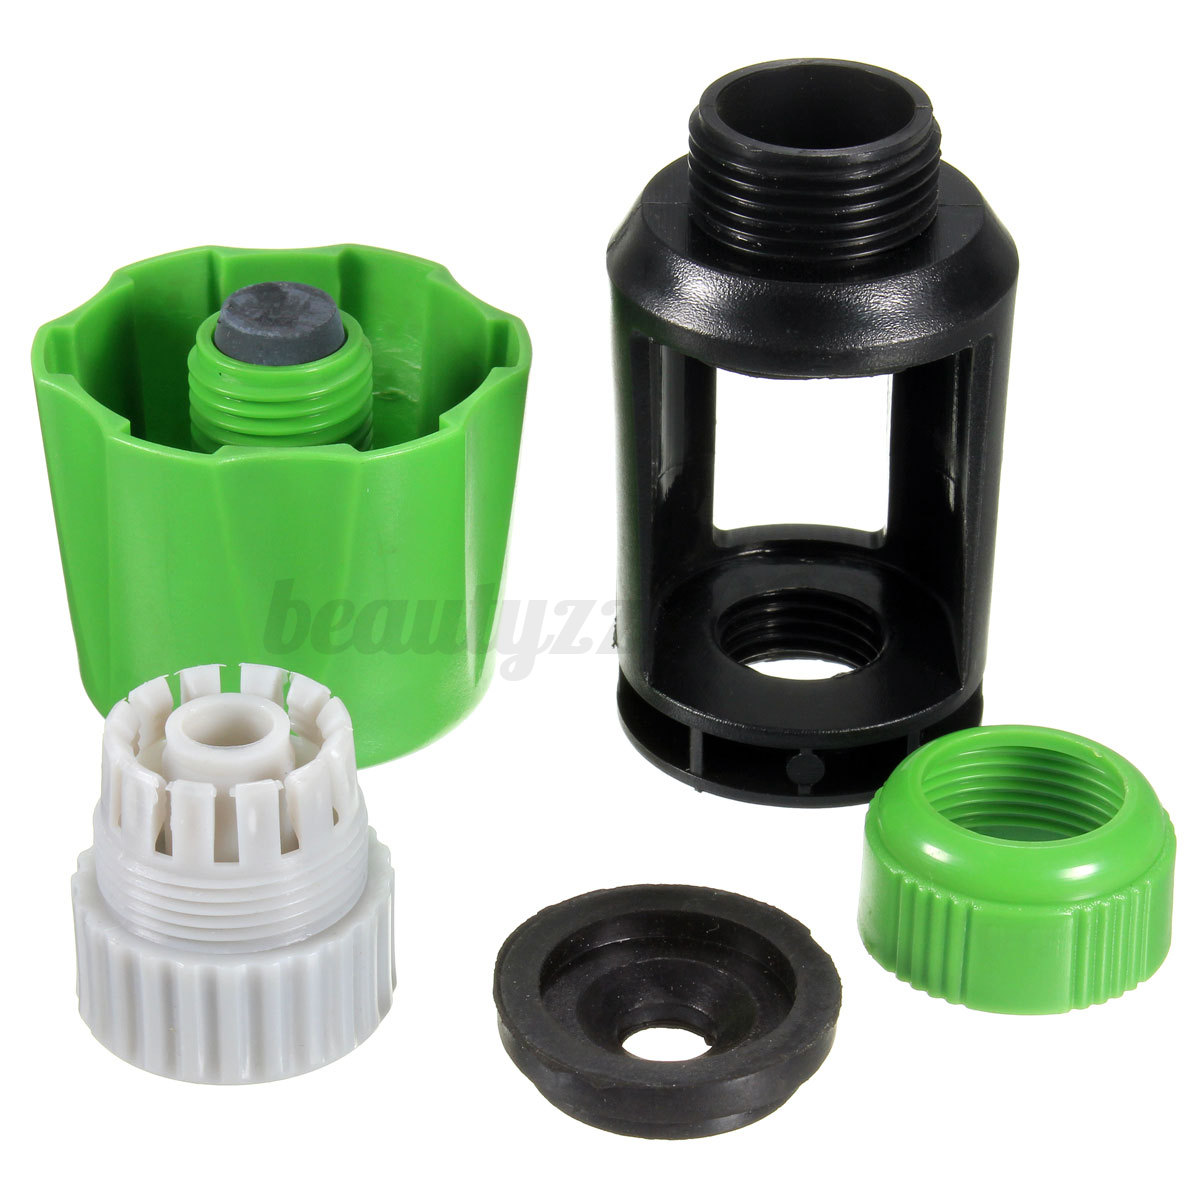 Garden hose pipe connector mixer kitchen watering equipment for universal tap ebay - Connect hose to kitchen tap ...